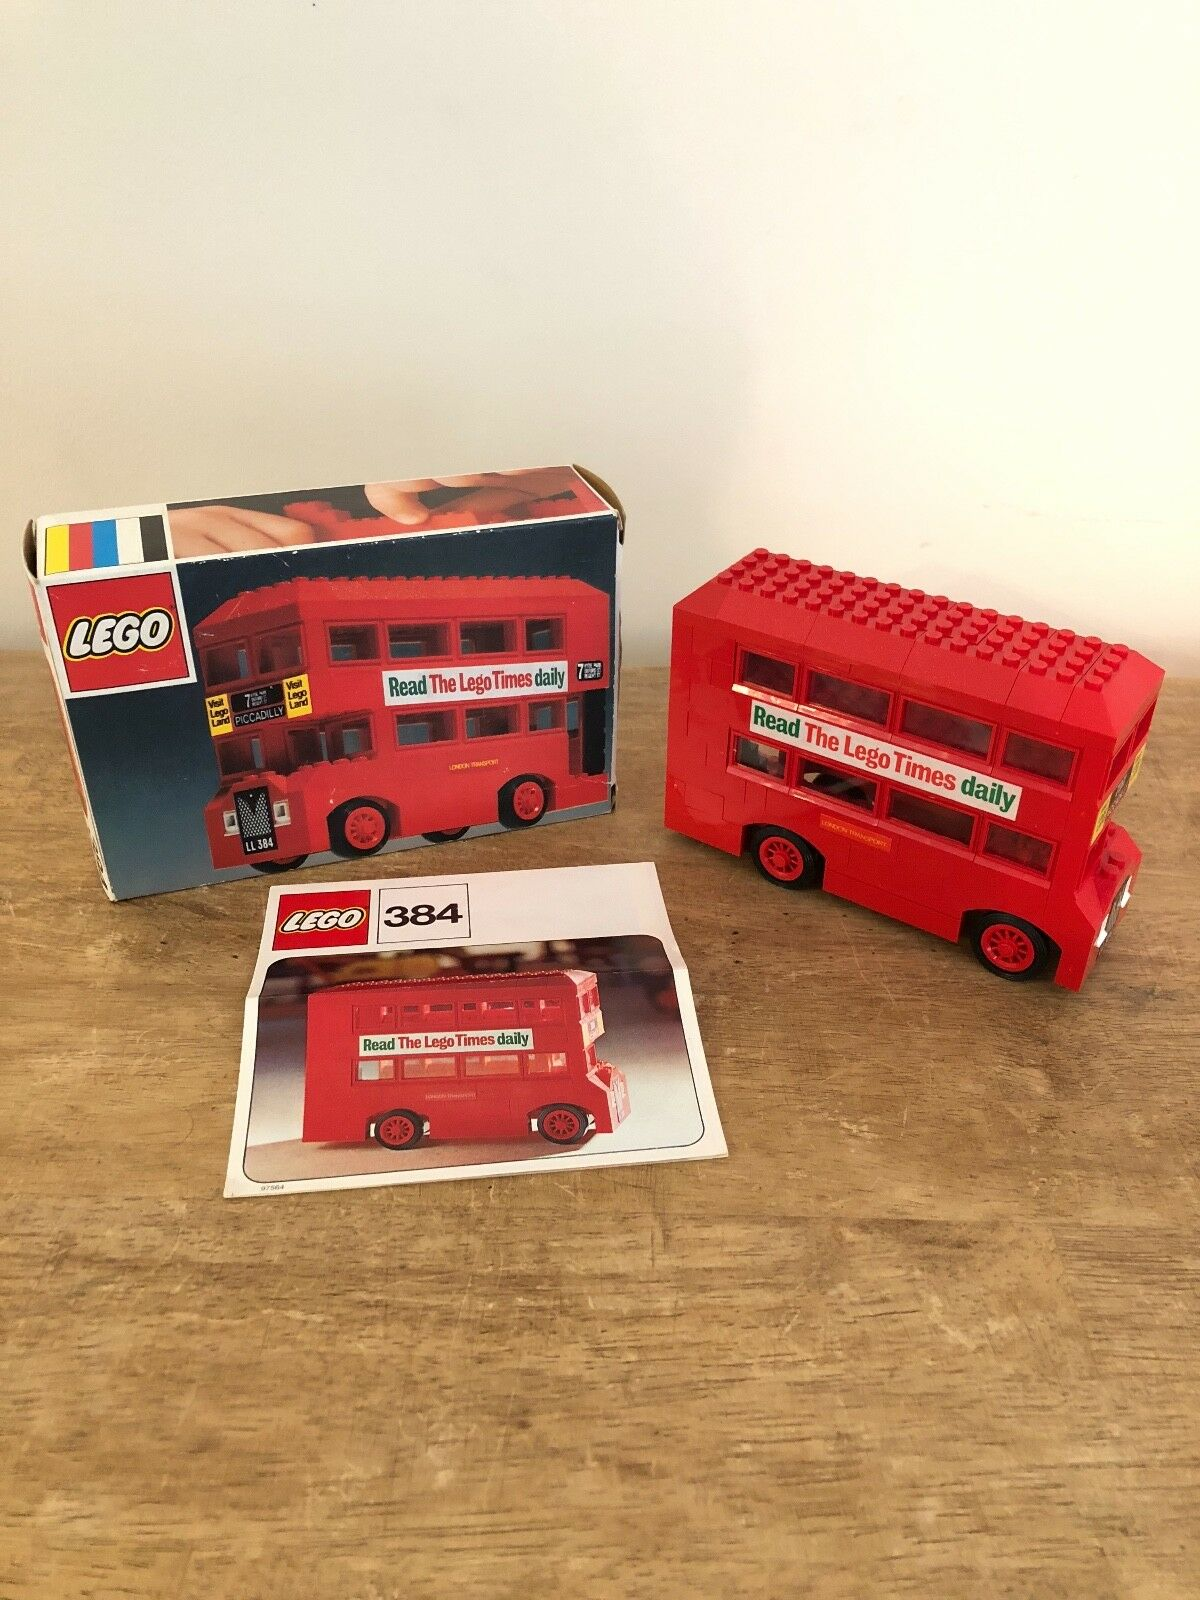 LEGO Rare Vintage London Bus  Set 384 - 1973 With Original Box And Instructions